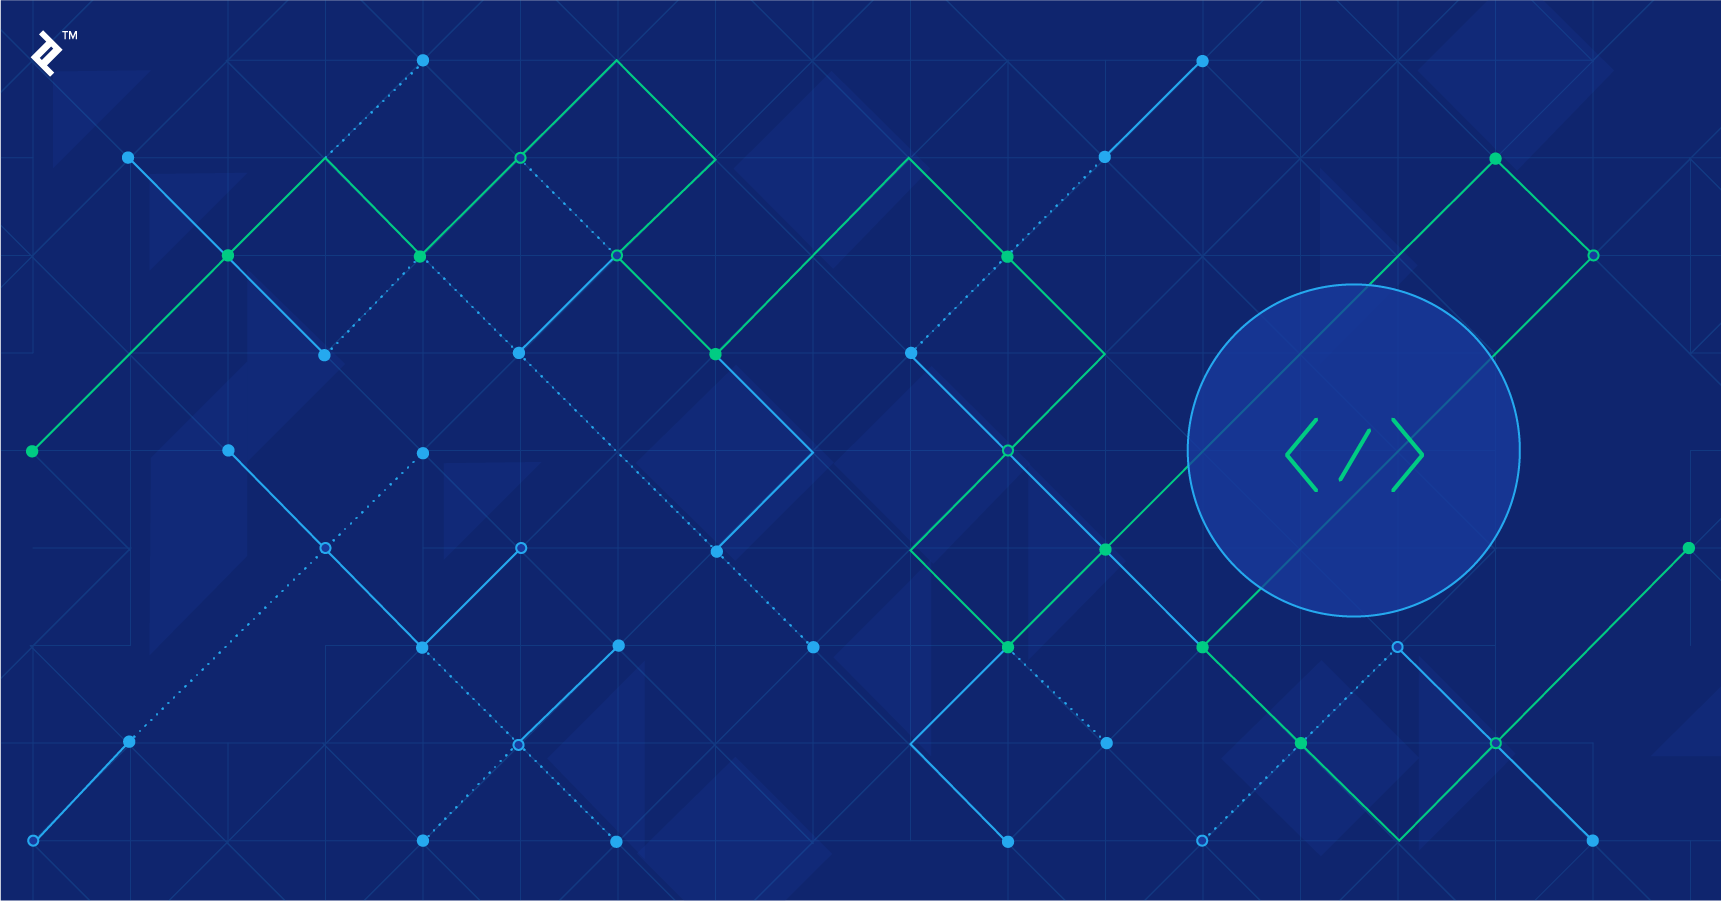 C and Python: Video Streaming Made 20x More Efficient | Toptal